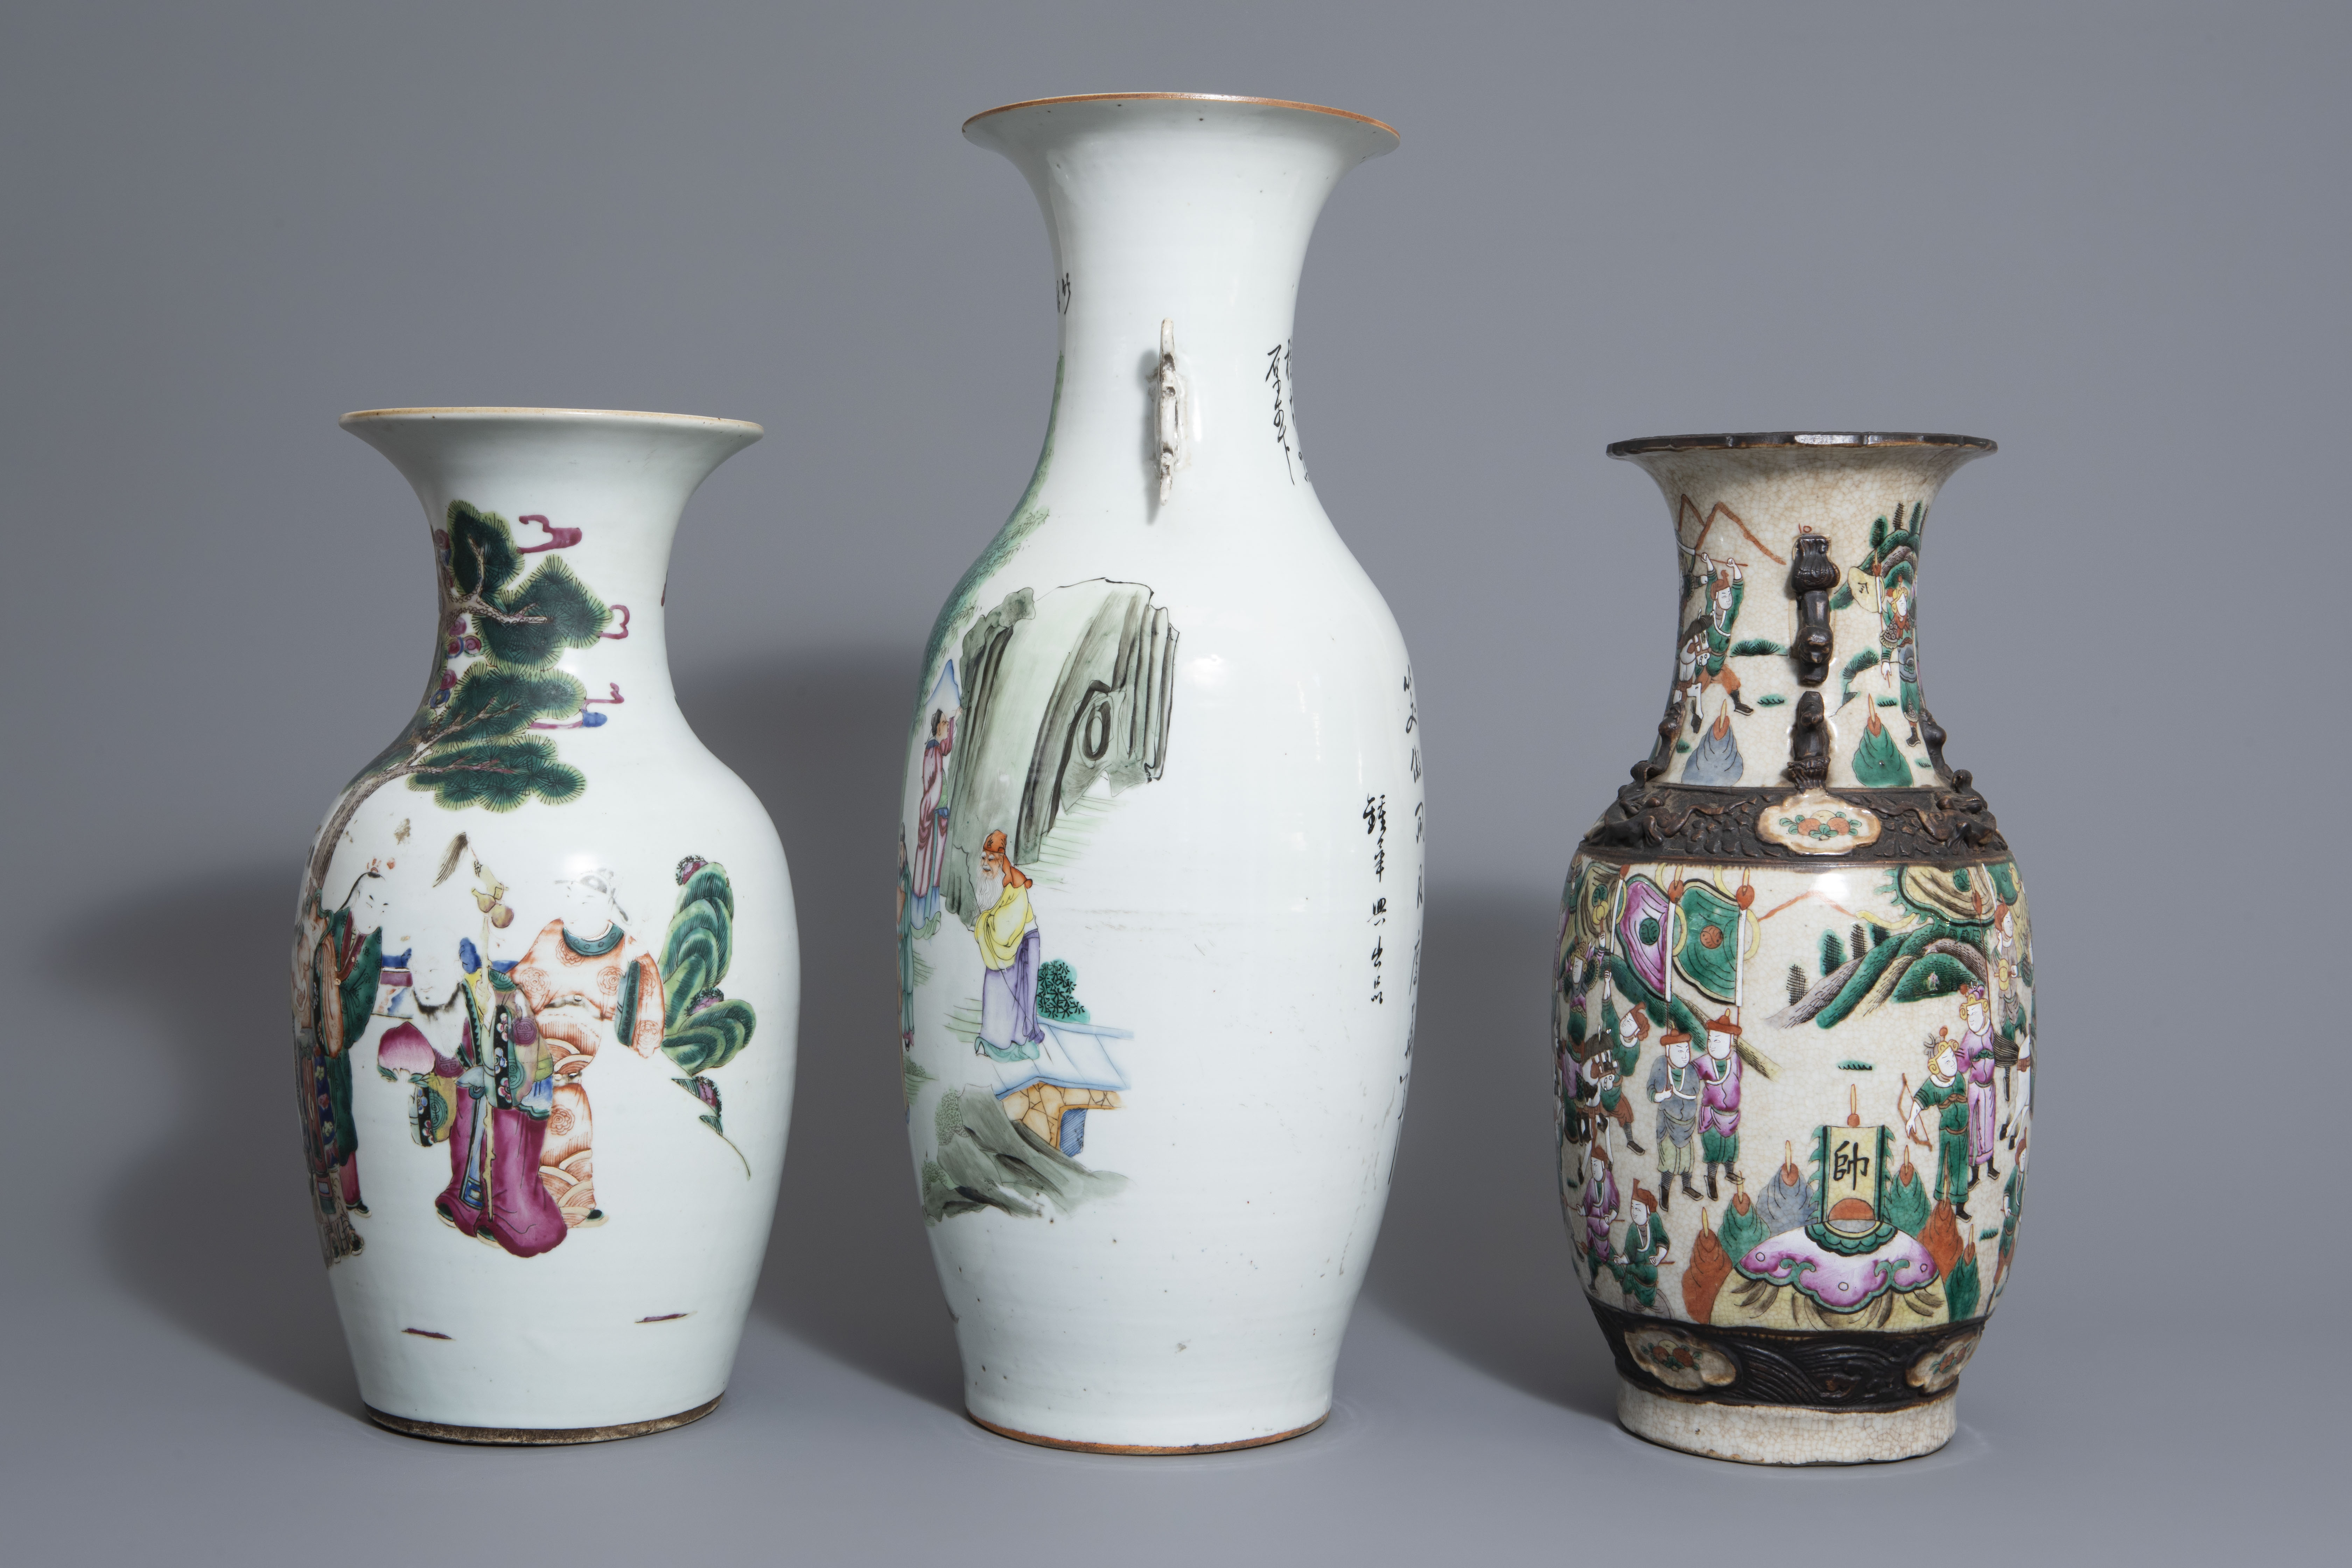 Three Chinese famille rose and Nanking crackle glazed vases, 19th C. - Image 5 of 7